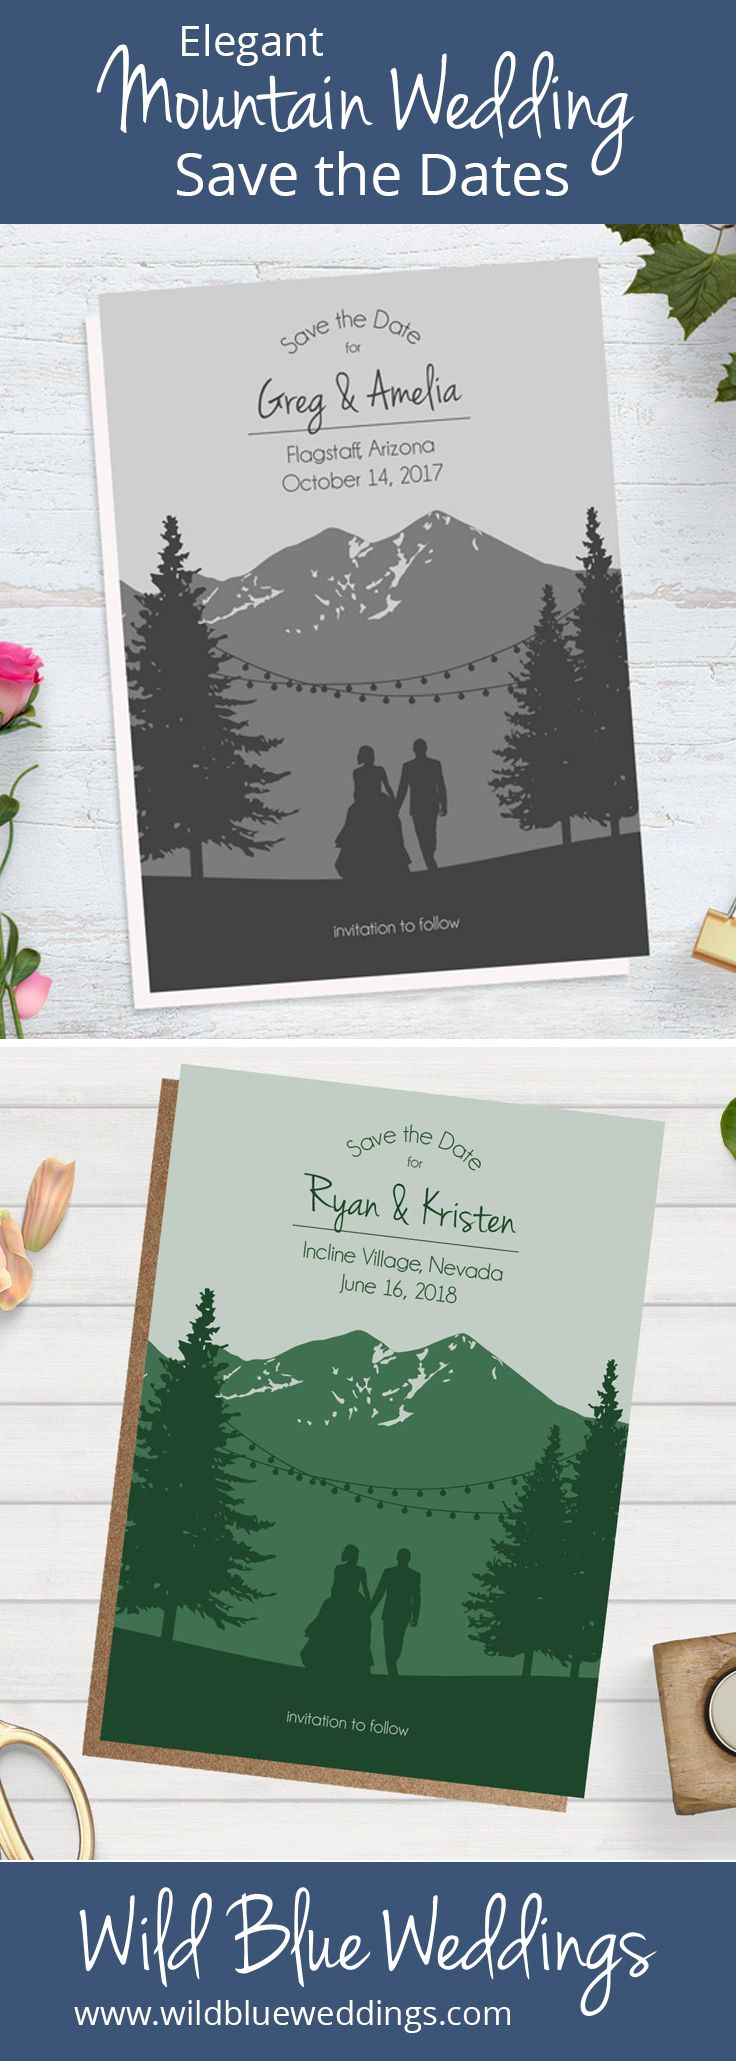 Wedding decorations trees with lights october 2018 Unique wedding thank you cards with custom illustrated silhouettes